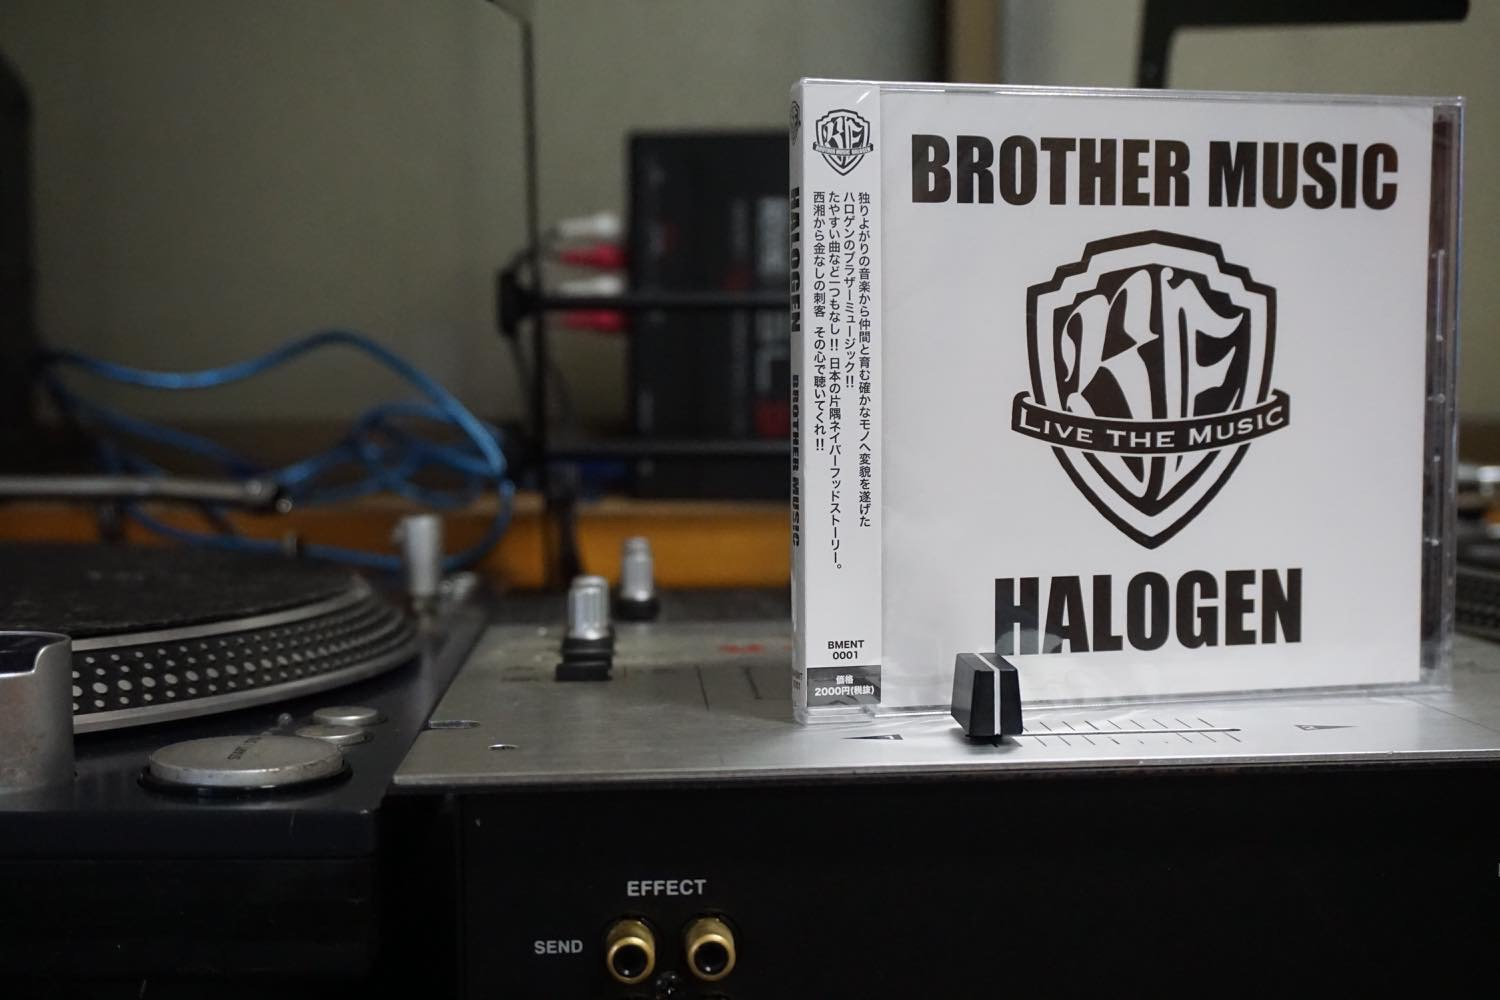 BROTHER MUSIC / HALOGEN